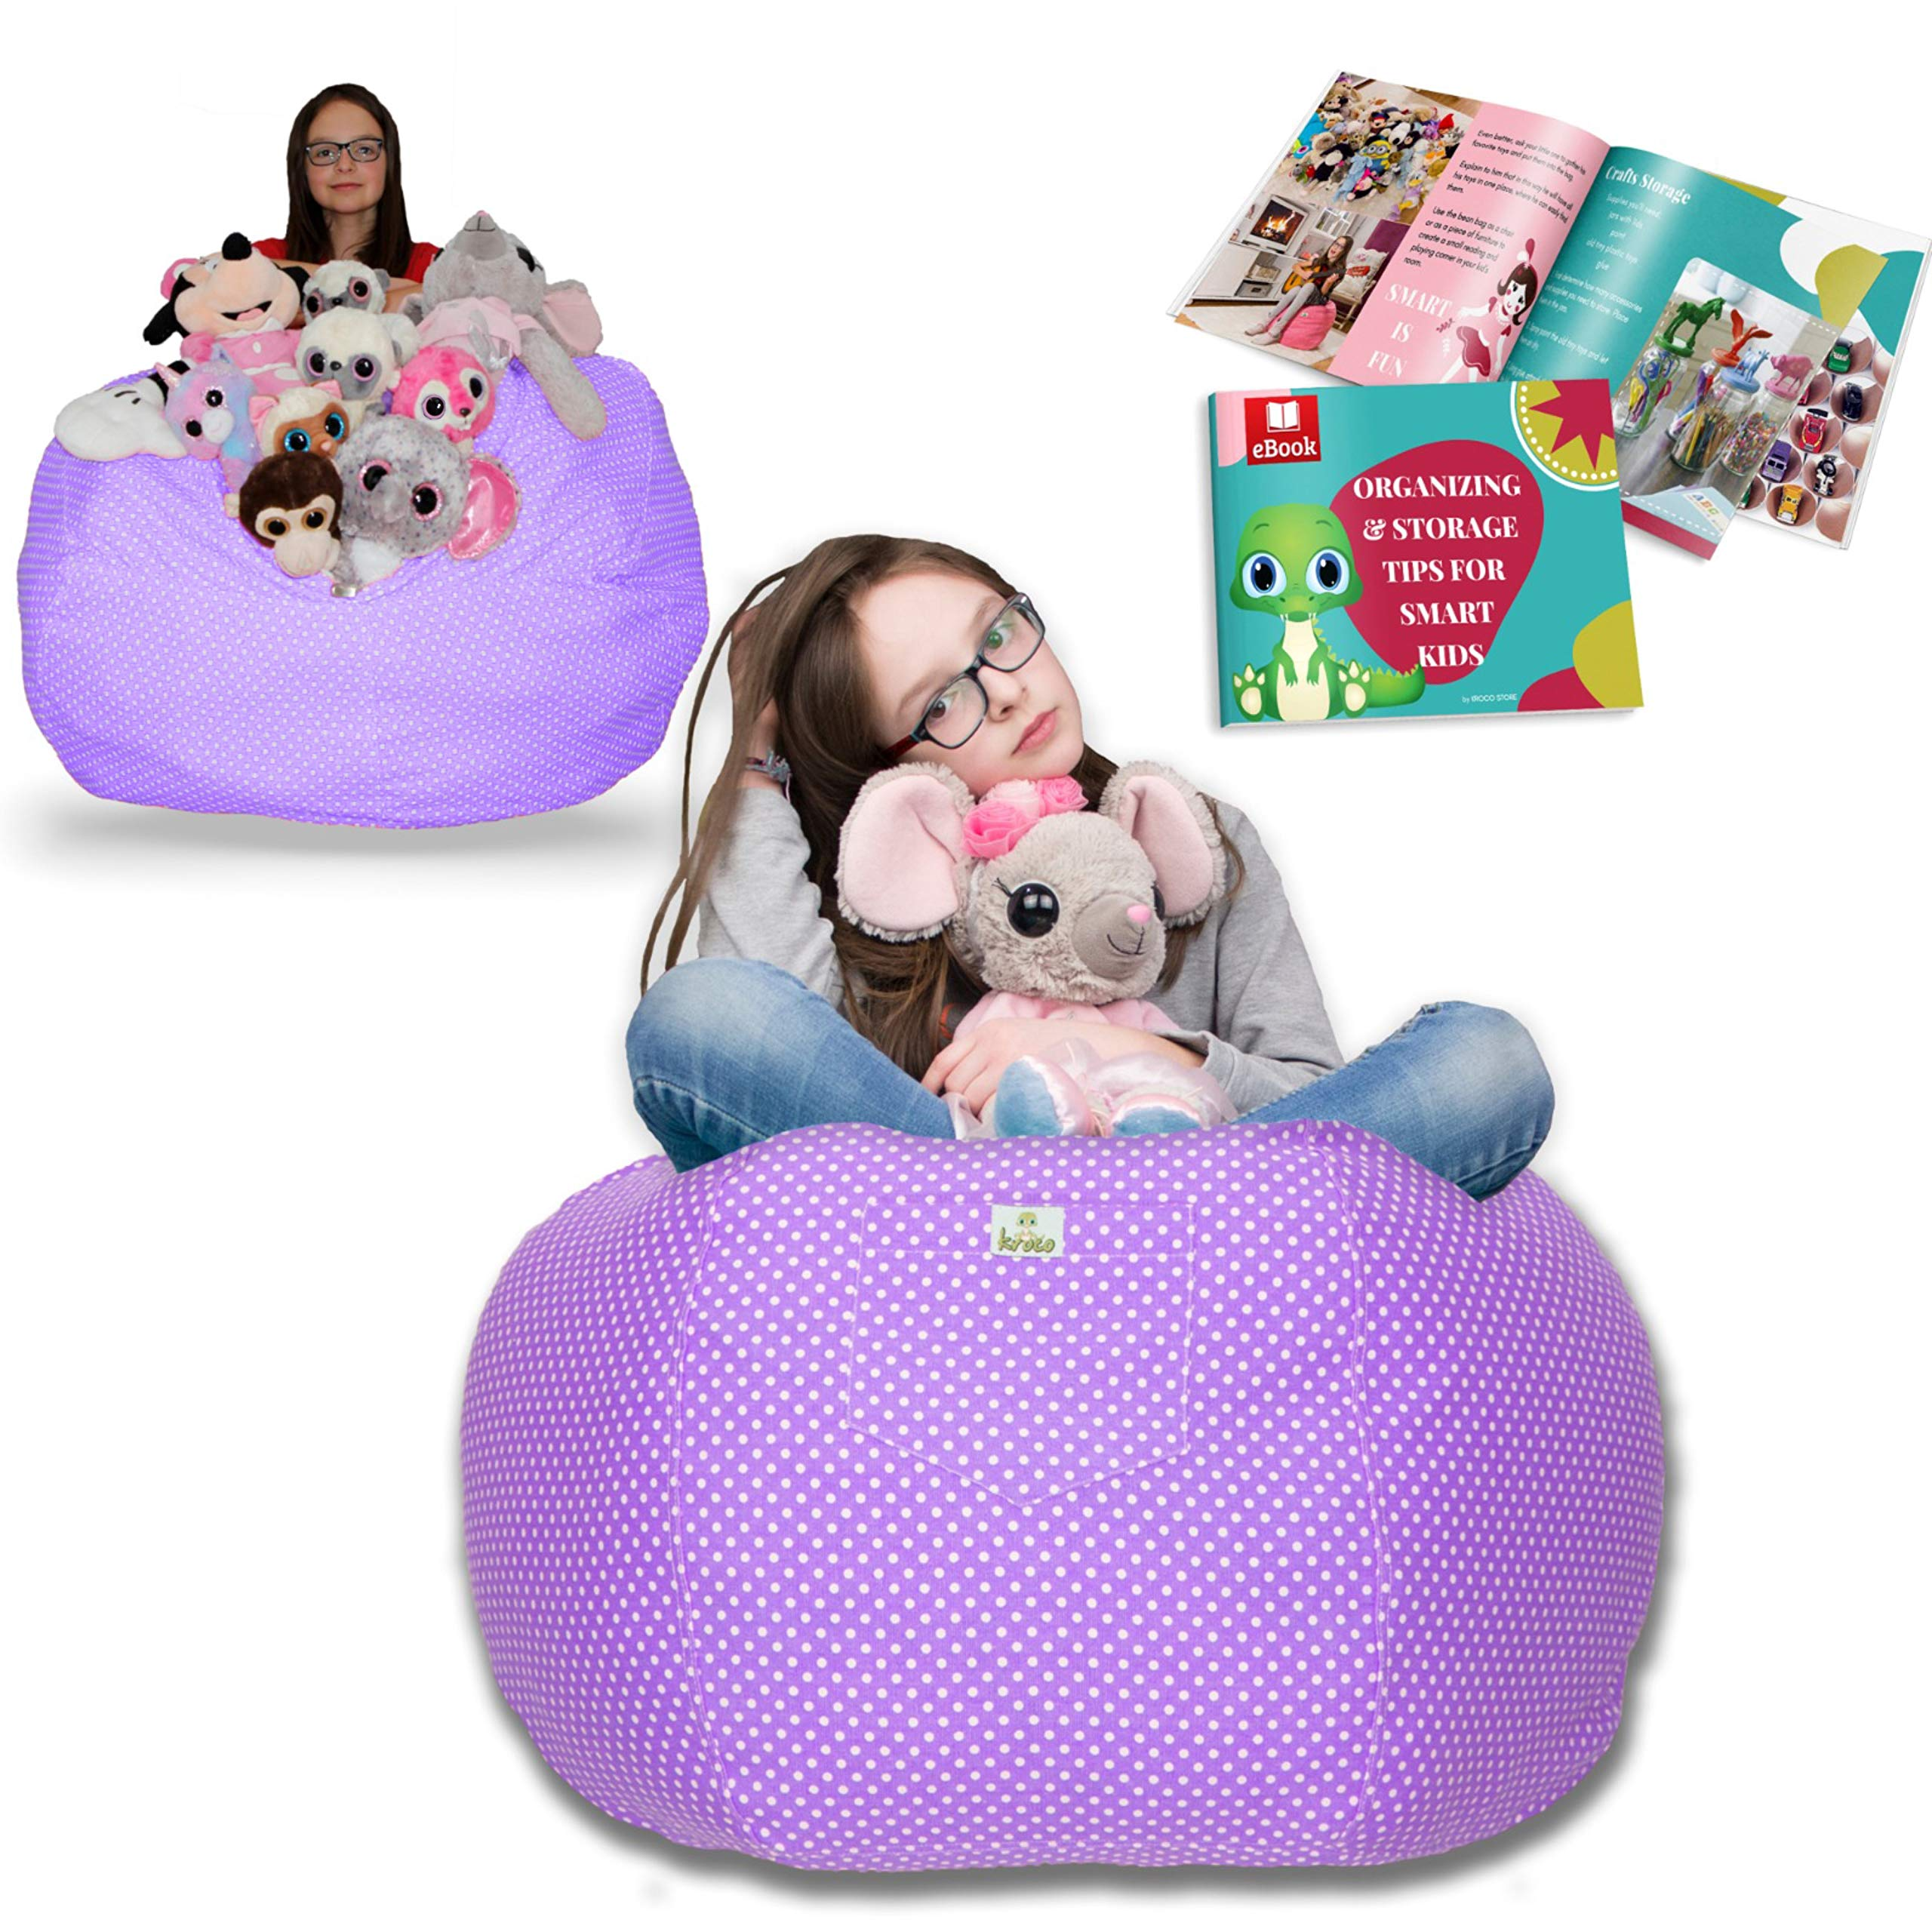 kroco extra large stuffed animal storage bean bag chair cover toy